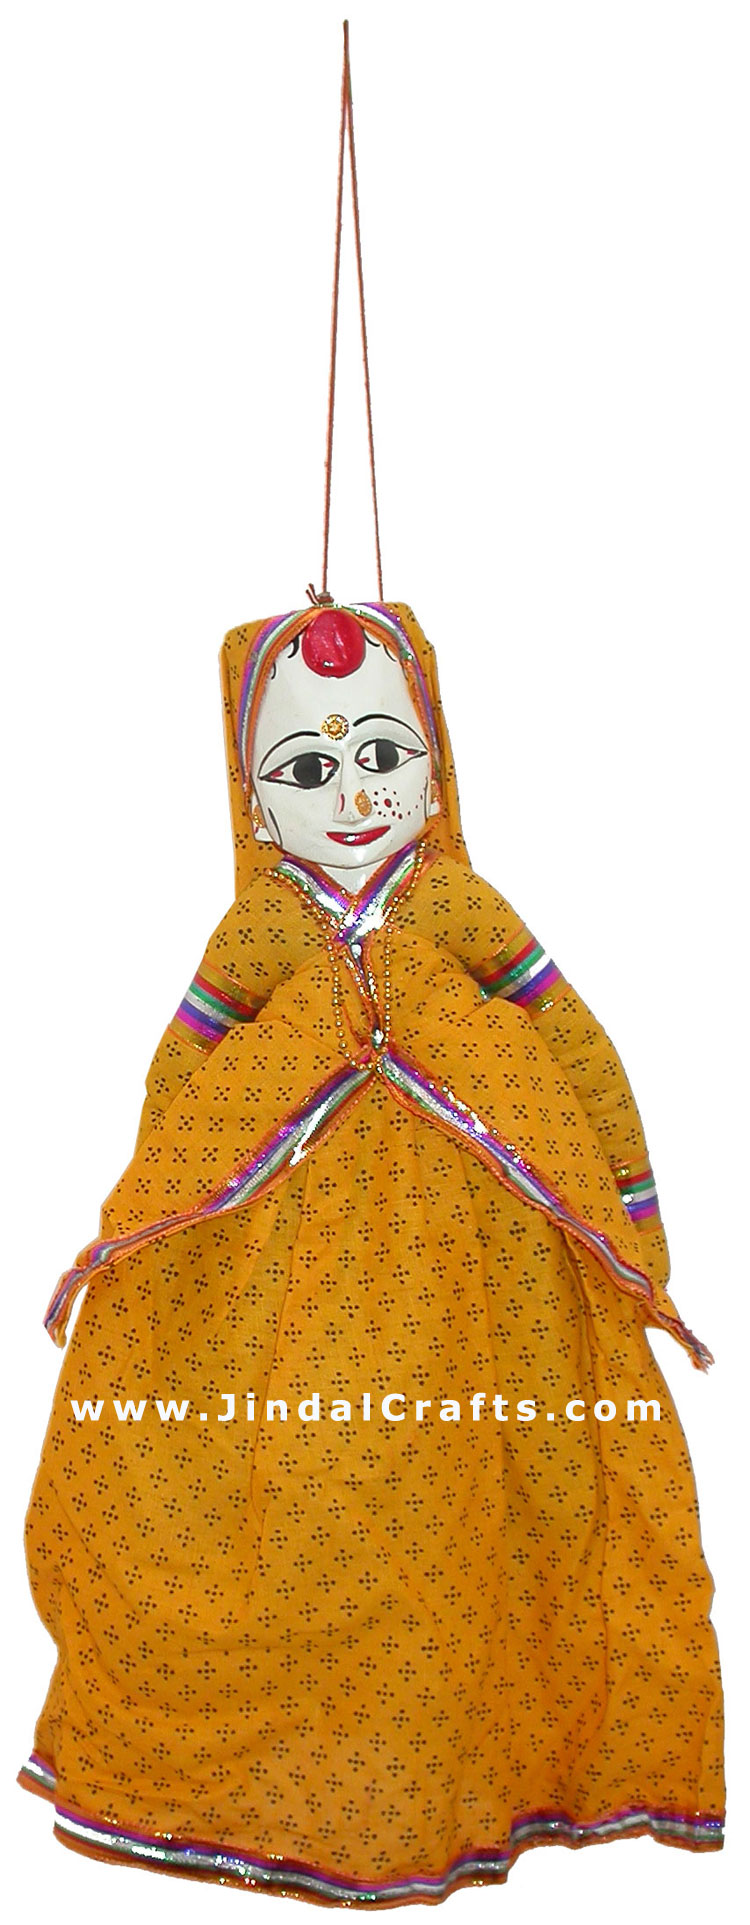 Handmade Wooden Puppet Pair of King and Queen India Folk Art Royal Dancing Dolls